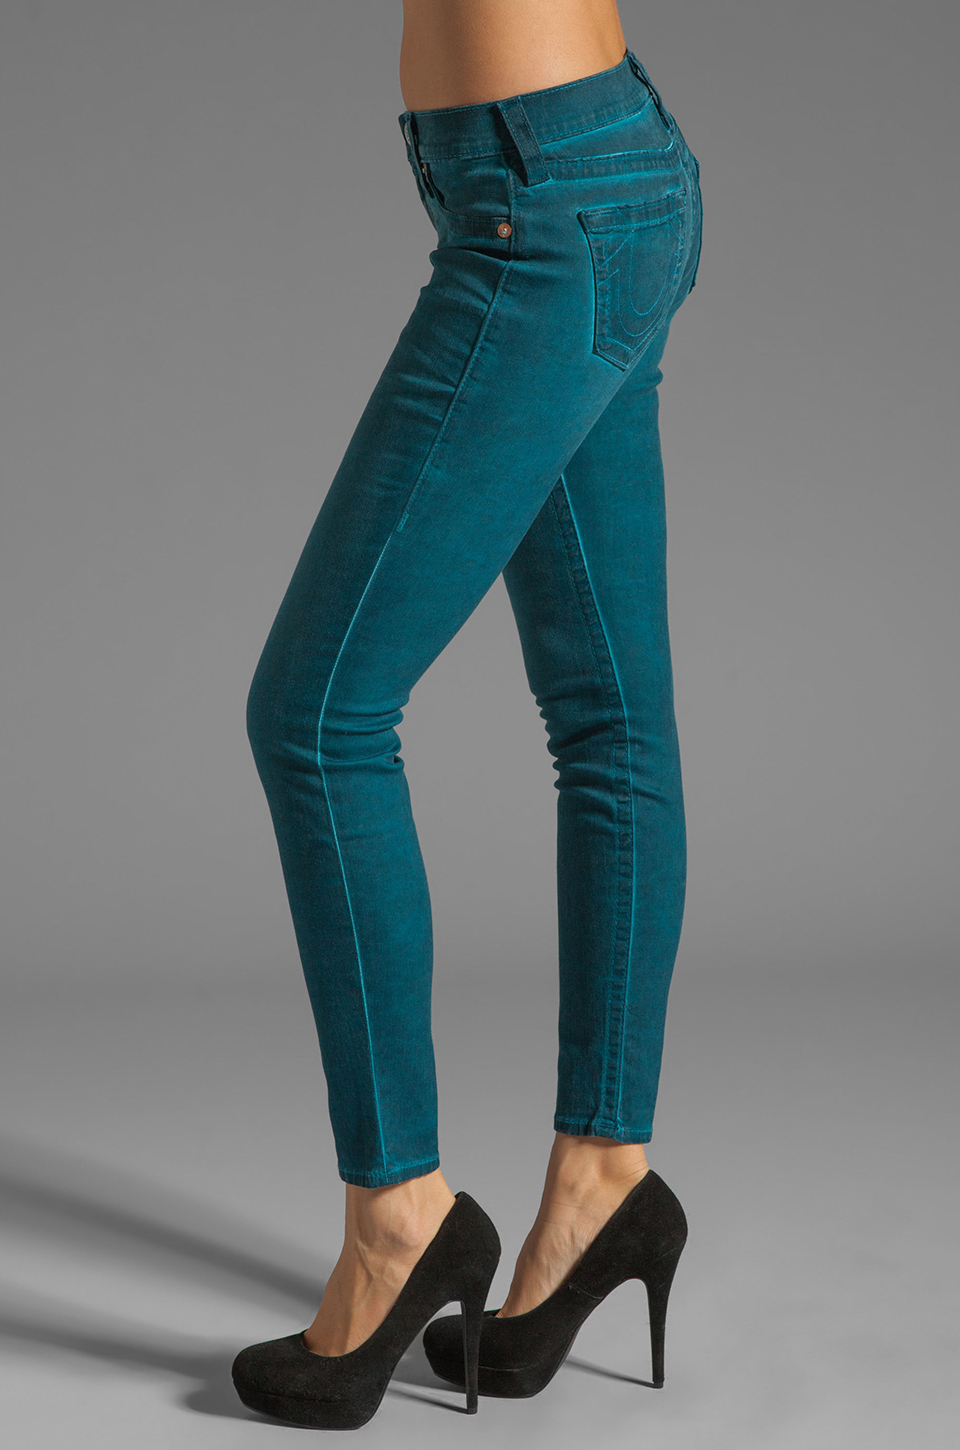 True Religion Casey Mid Rise Skinny in Peacock